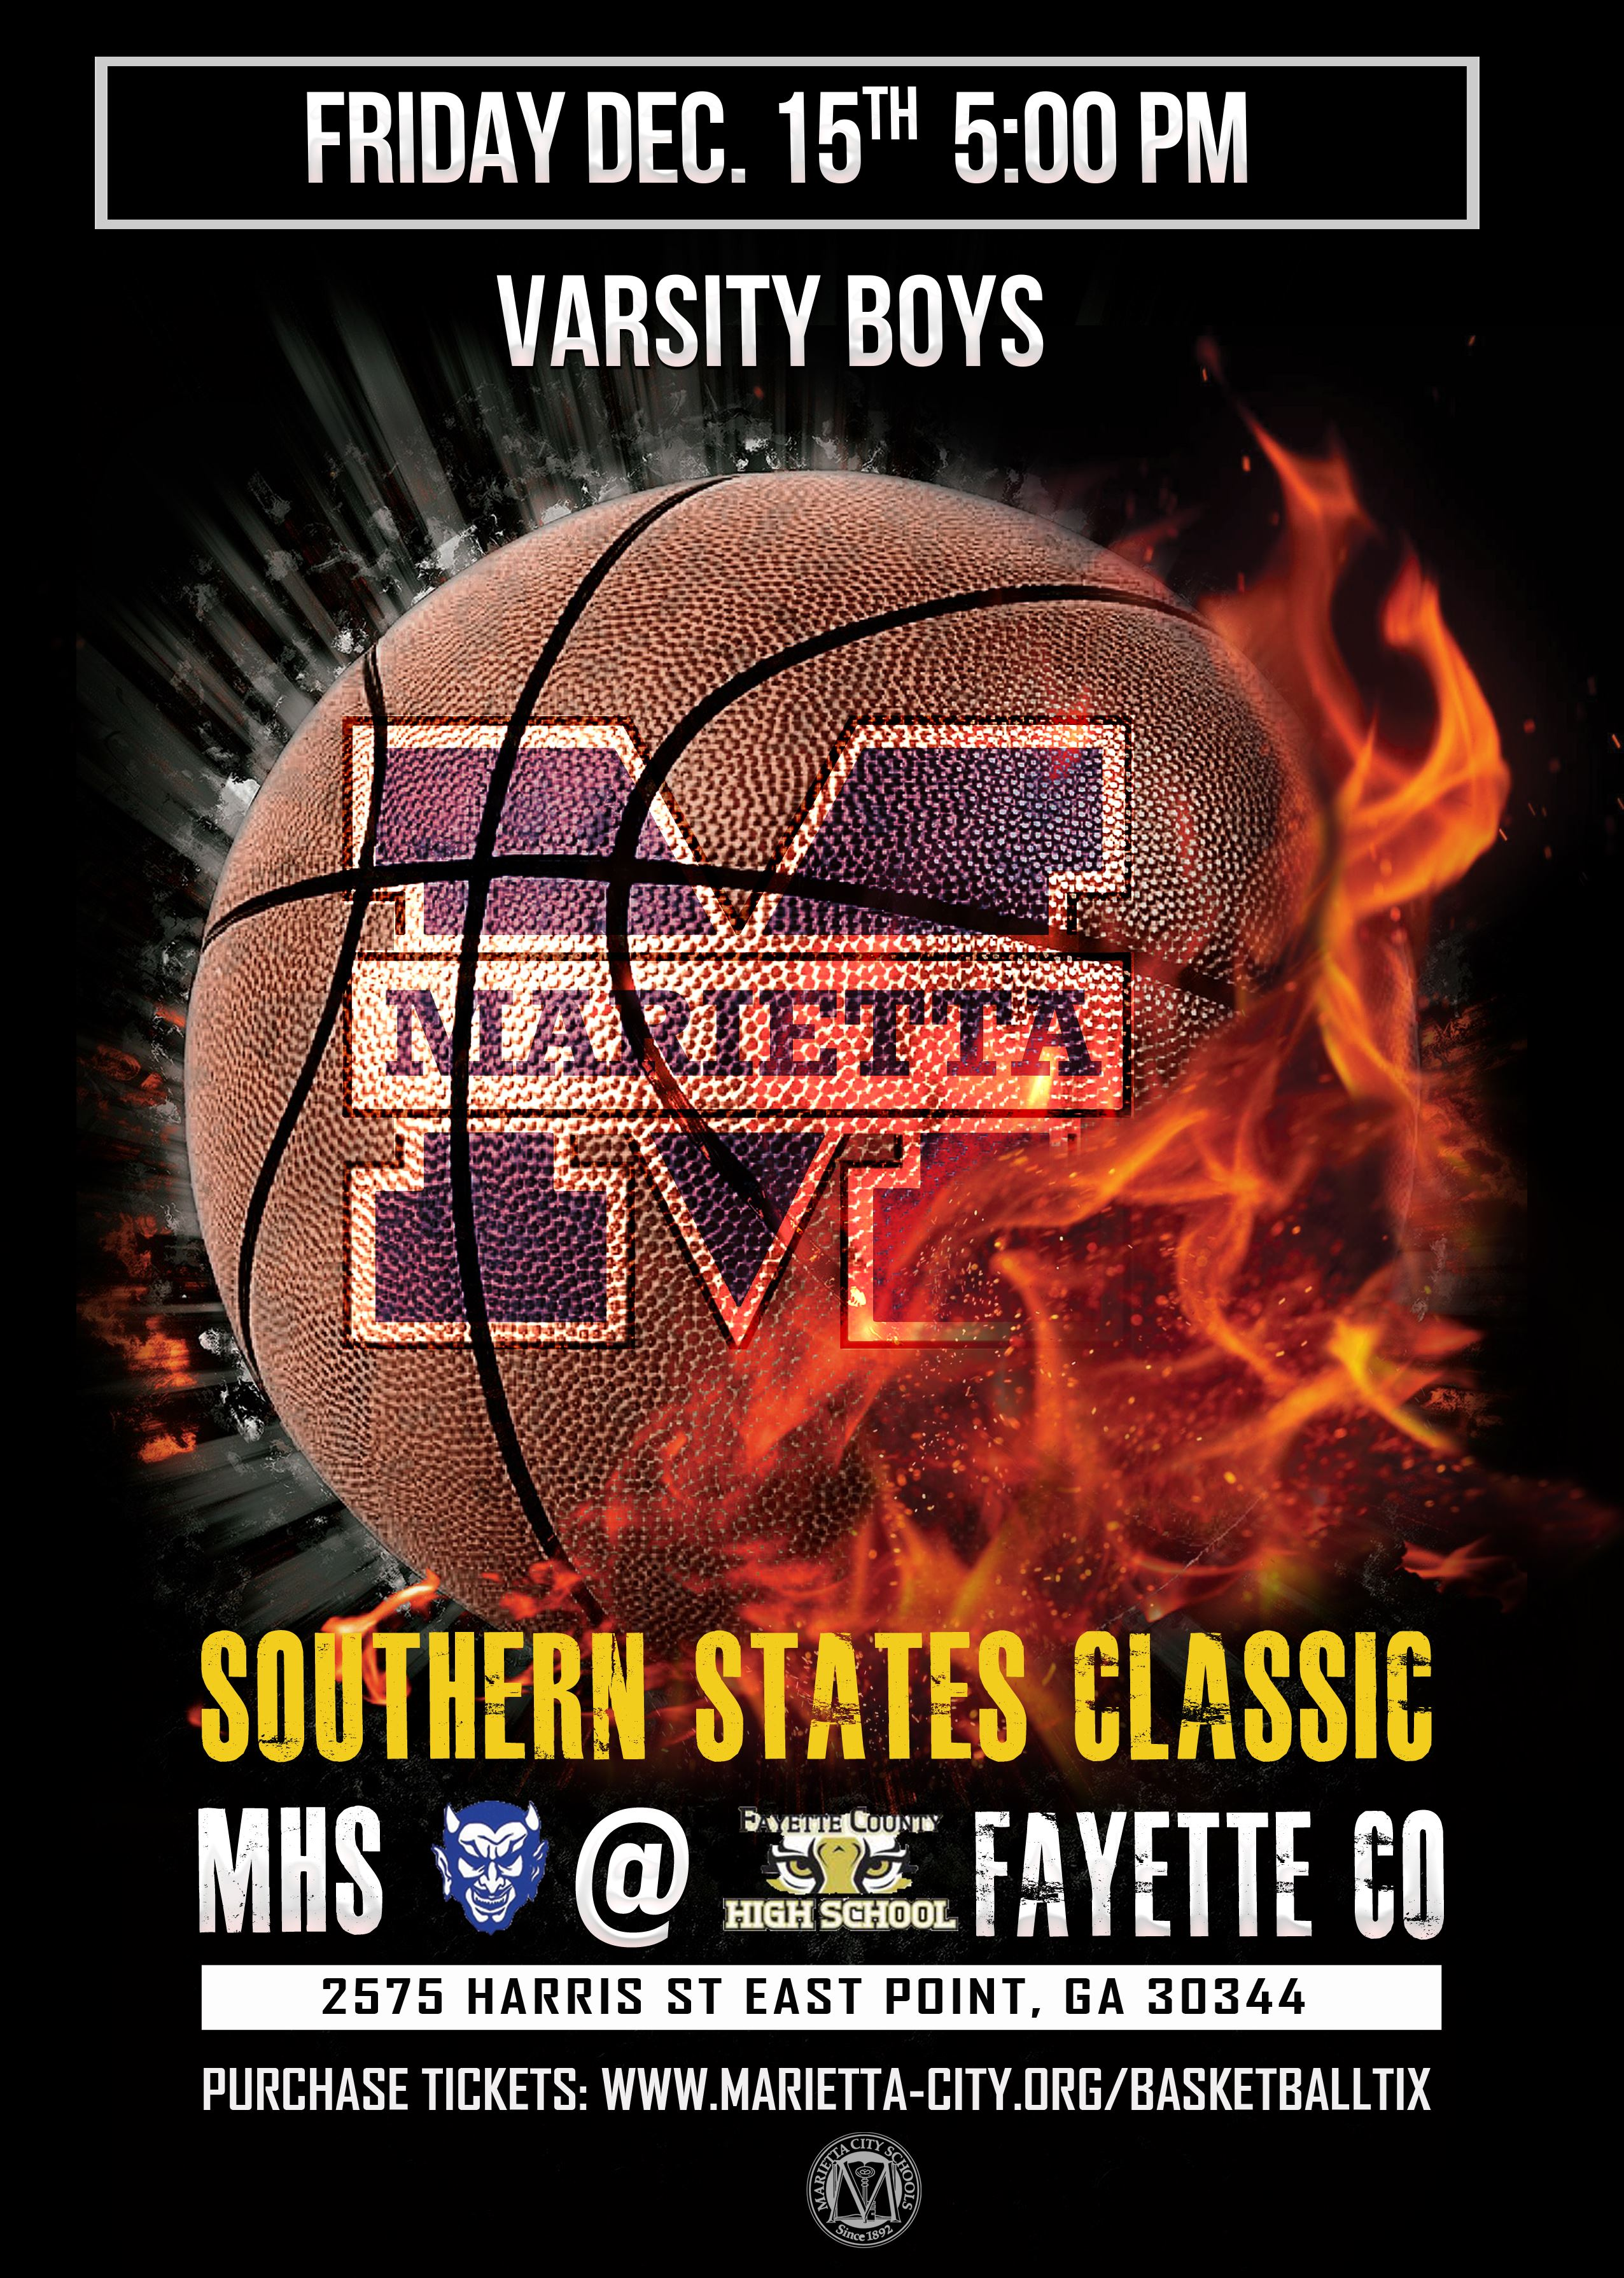 Southern States Classic: MHS vs Fayette County High School